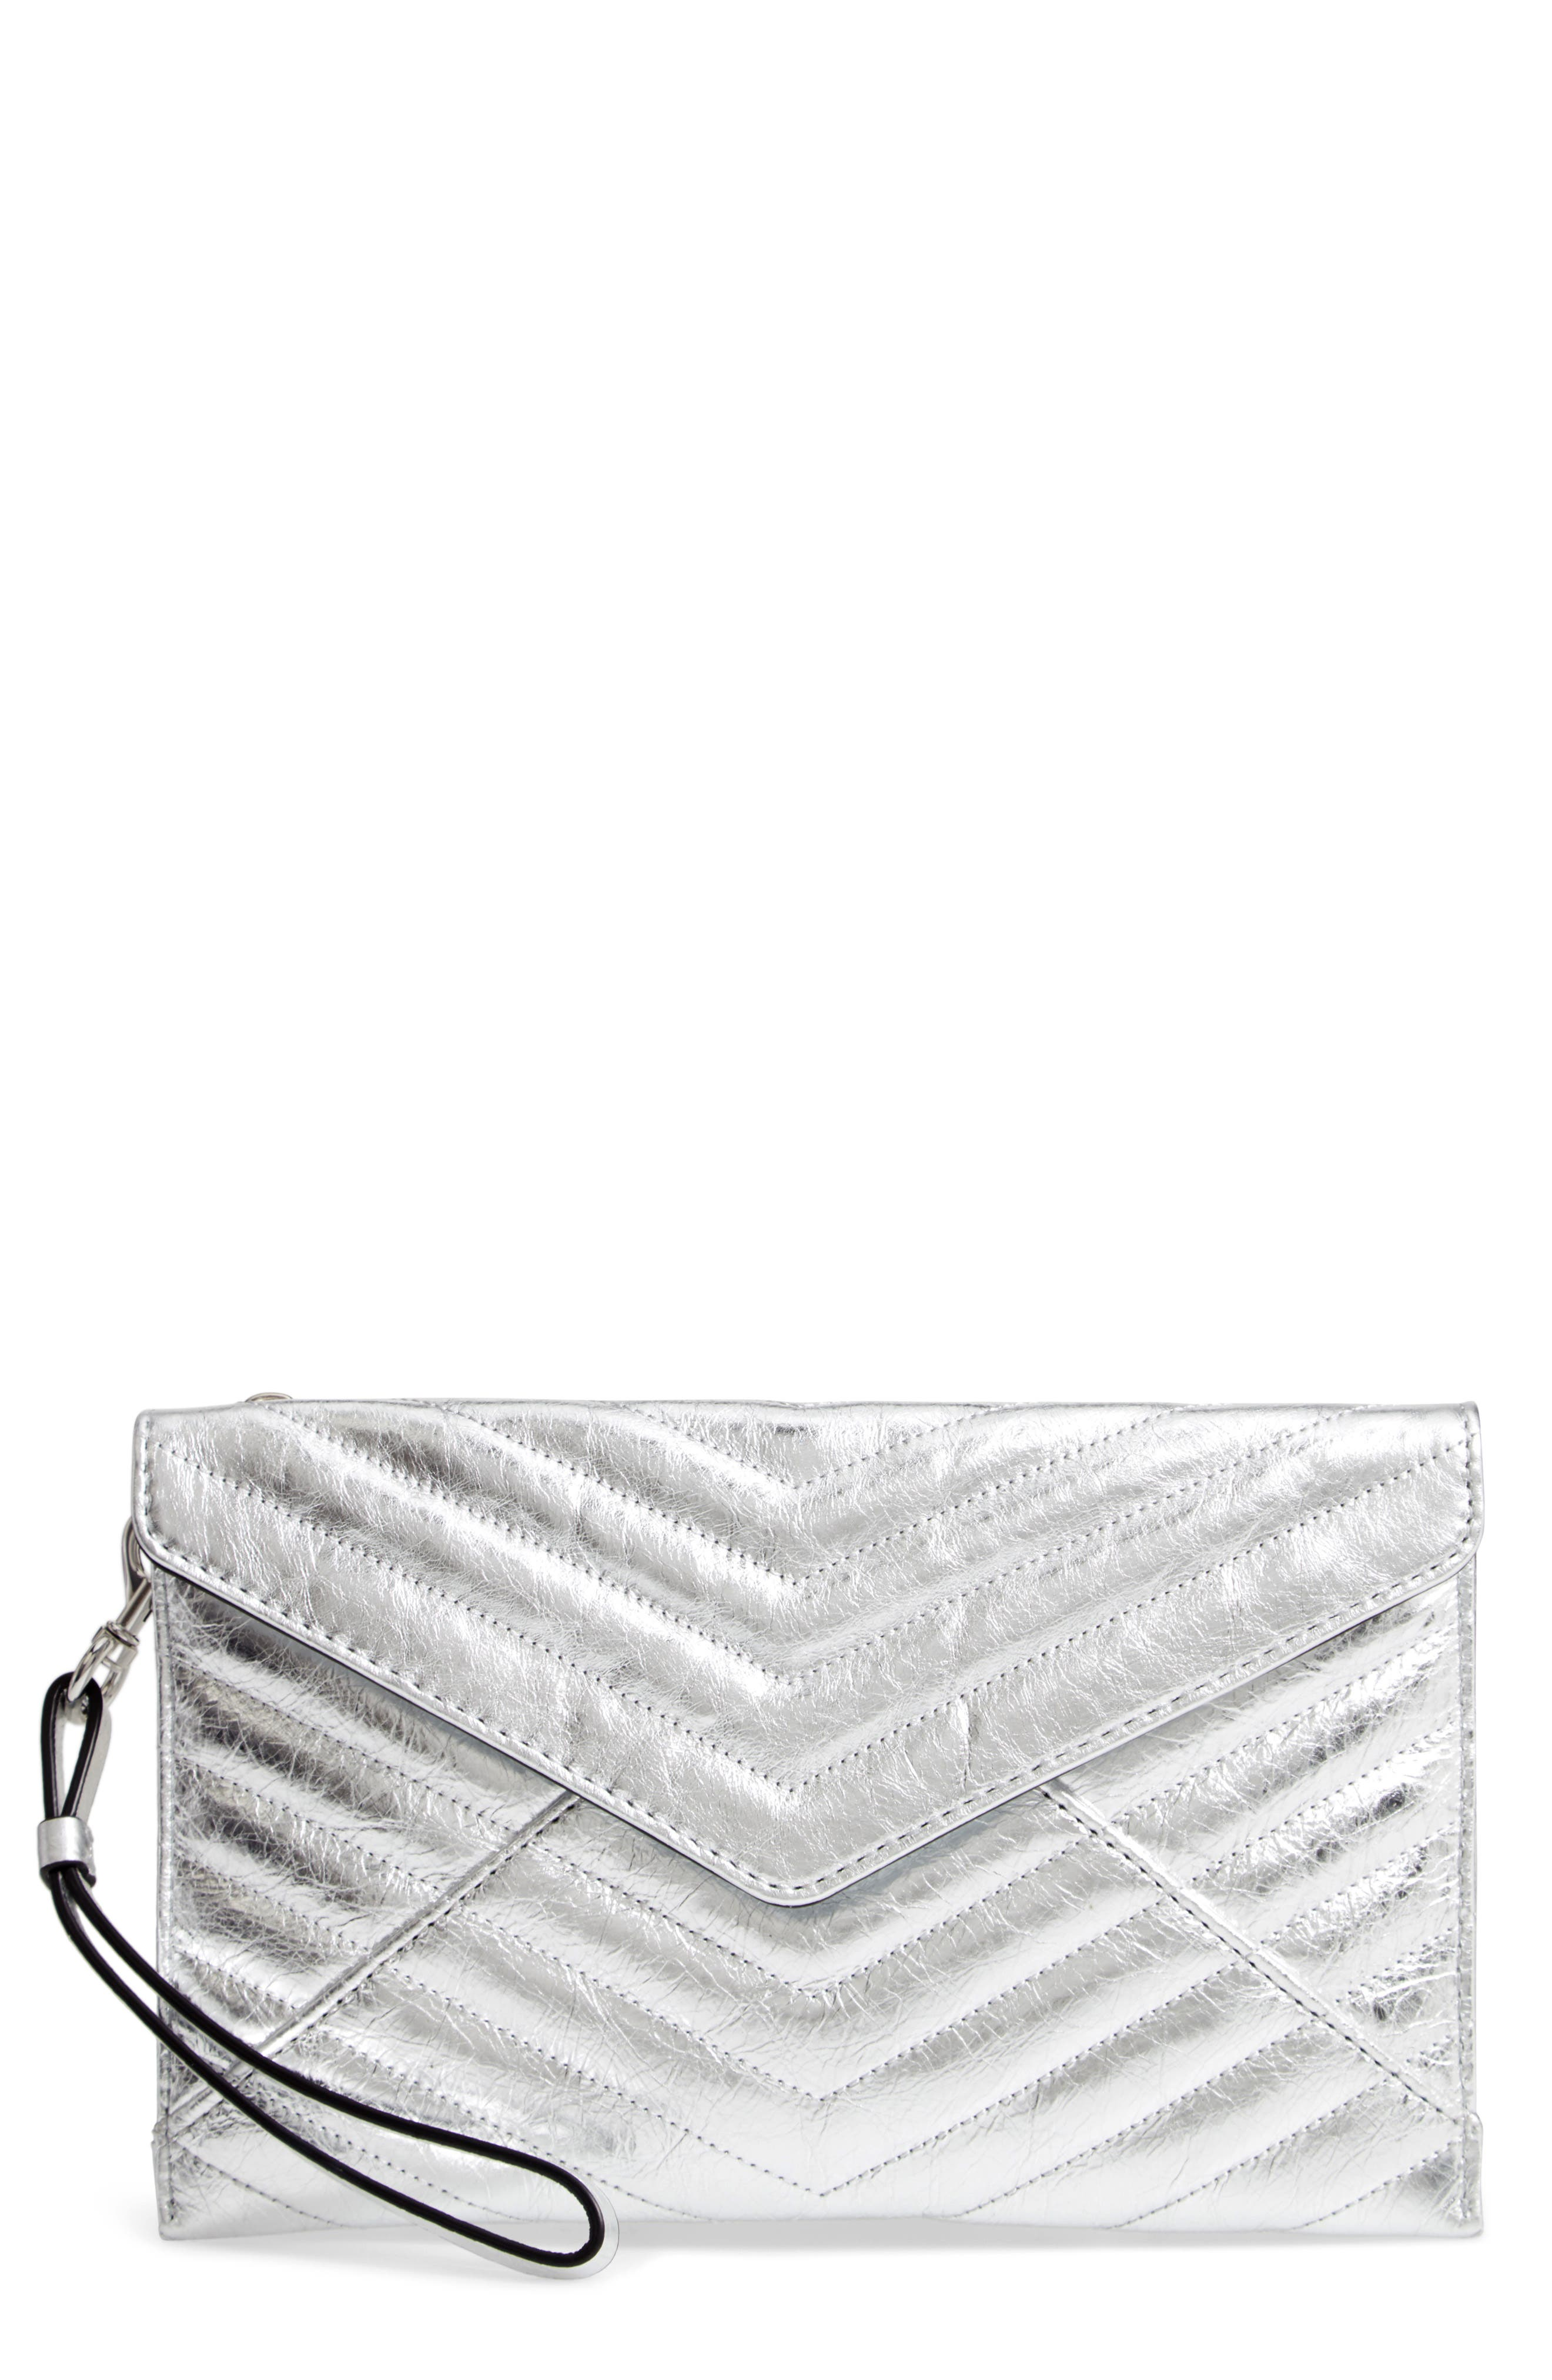 REBECCA MINKOFF, Leo Quilted Leather Clutch, Main thumbnail 1, color, SILVER